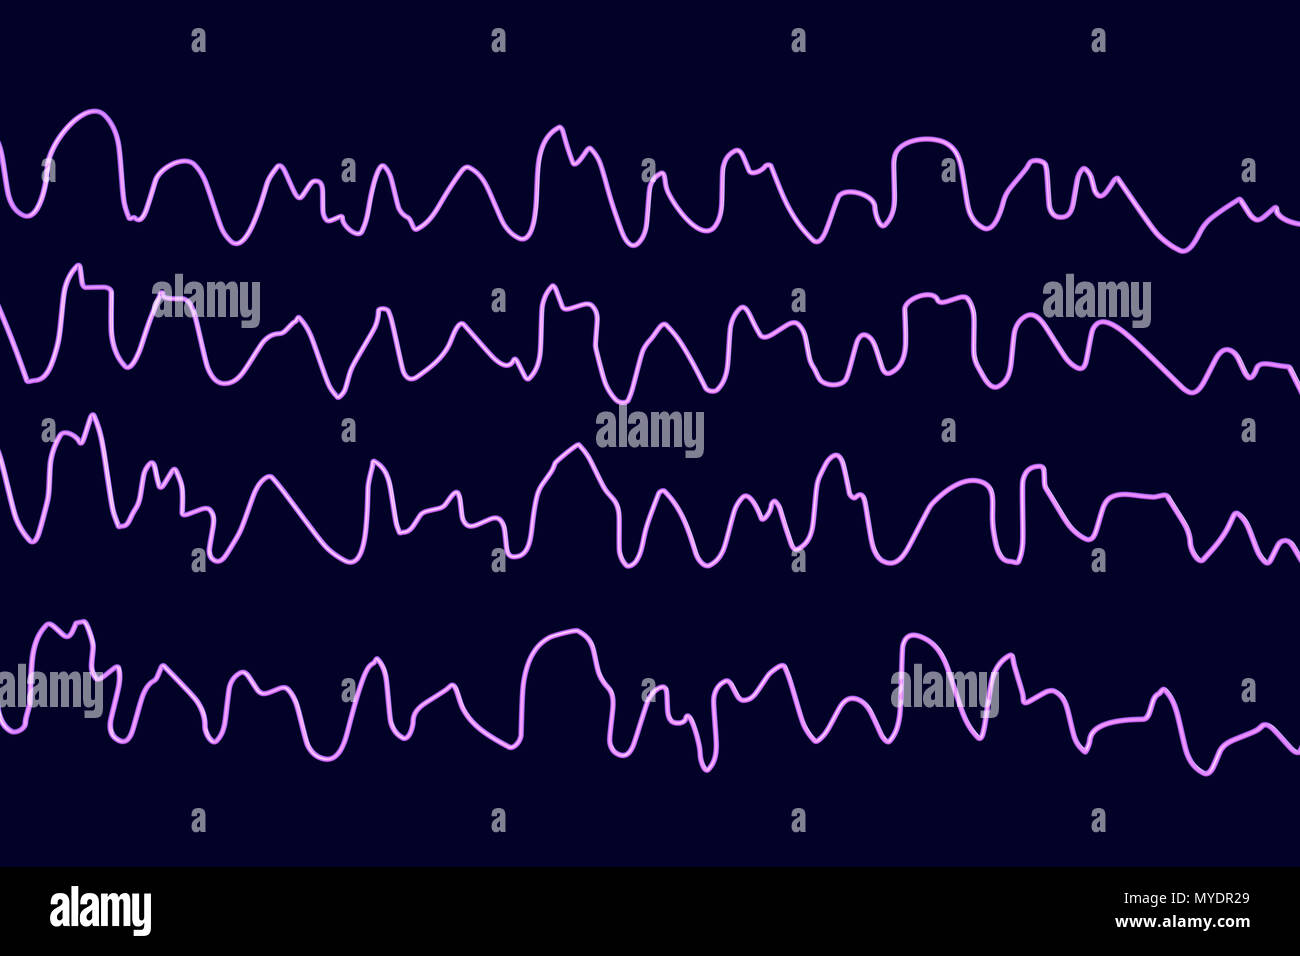 Brain waves during sleeping, computer illustration. An electroencephalogram (EEG) measures electrical activity in the brain using electrodes attached to the scalp. Various disorders can be diagnosed by analysing EEG results. - Stock Image